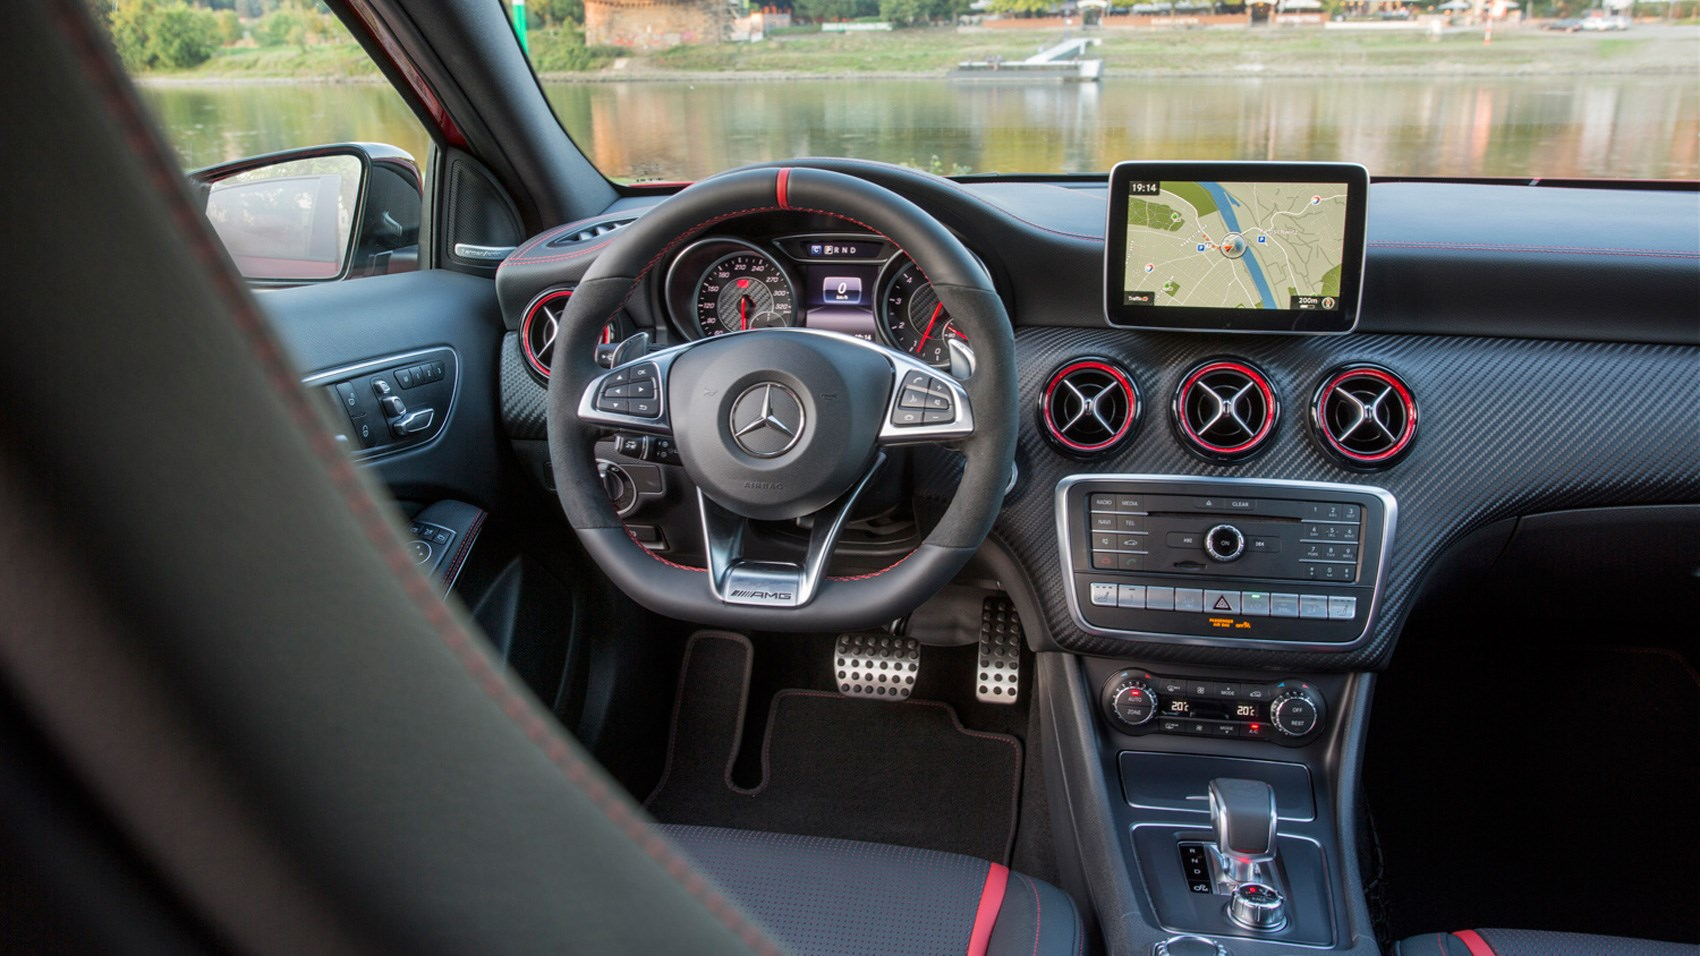 Mercedes Benz Amg >> Mercedes-AMG A45 (2017) review | CAR Magazine